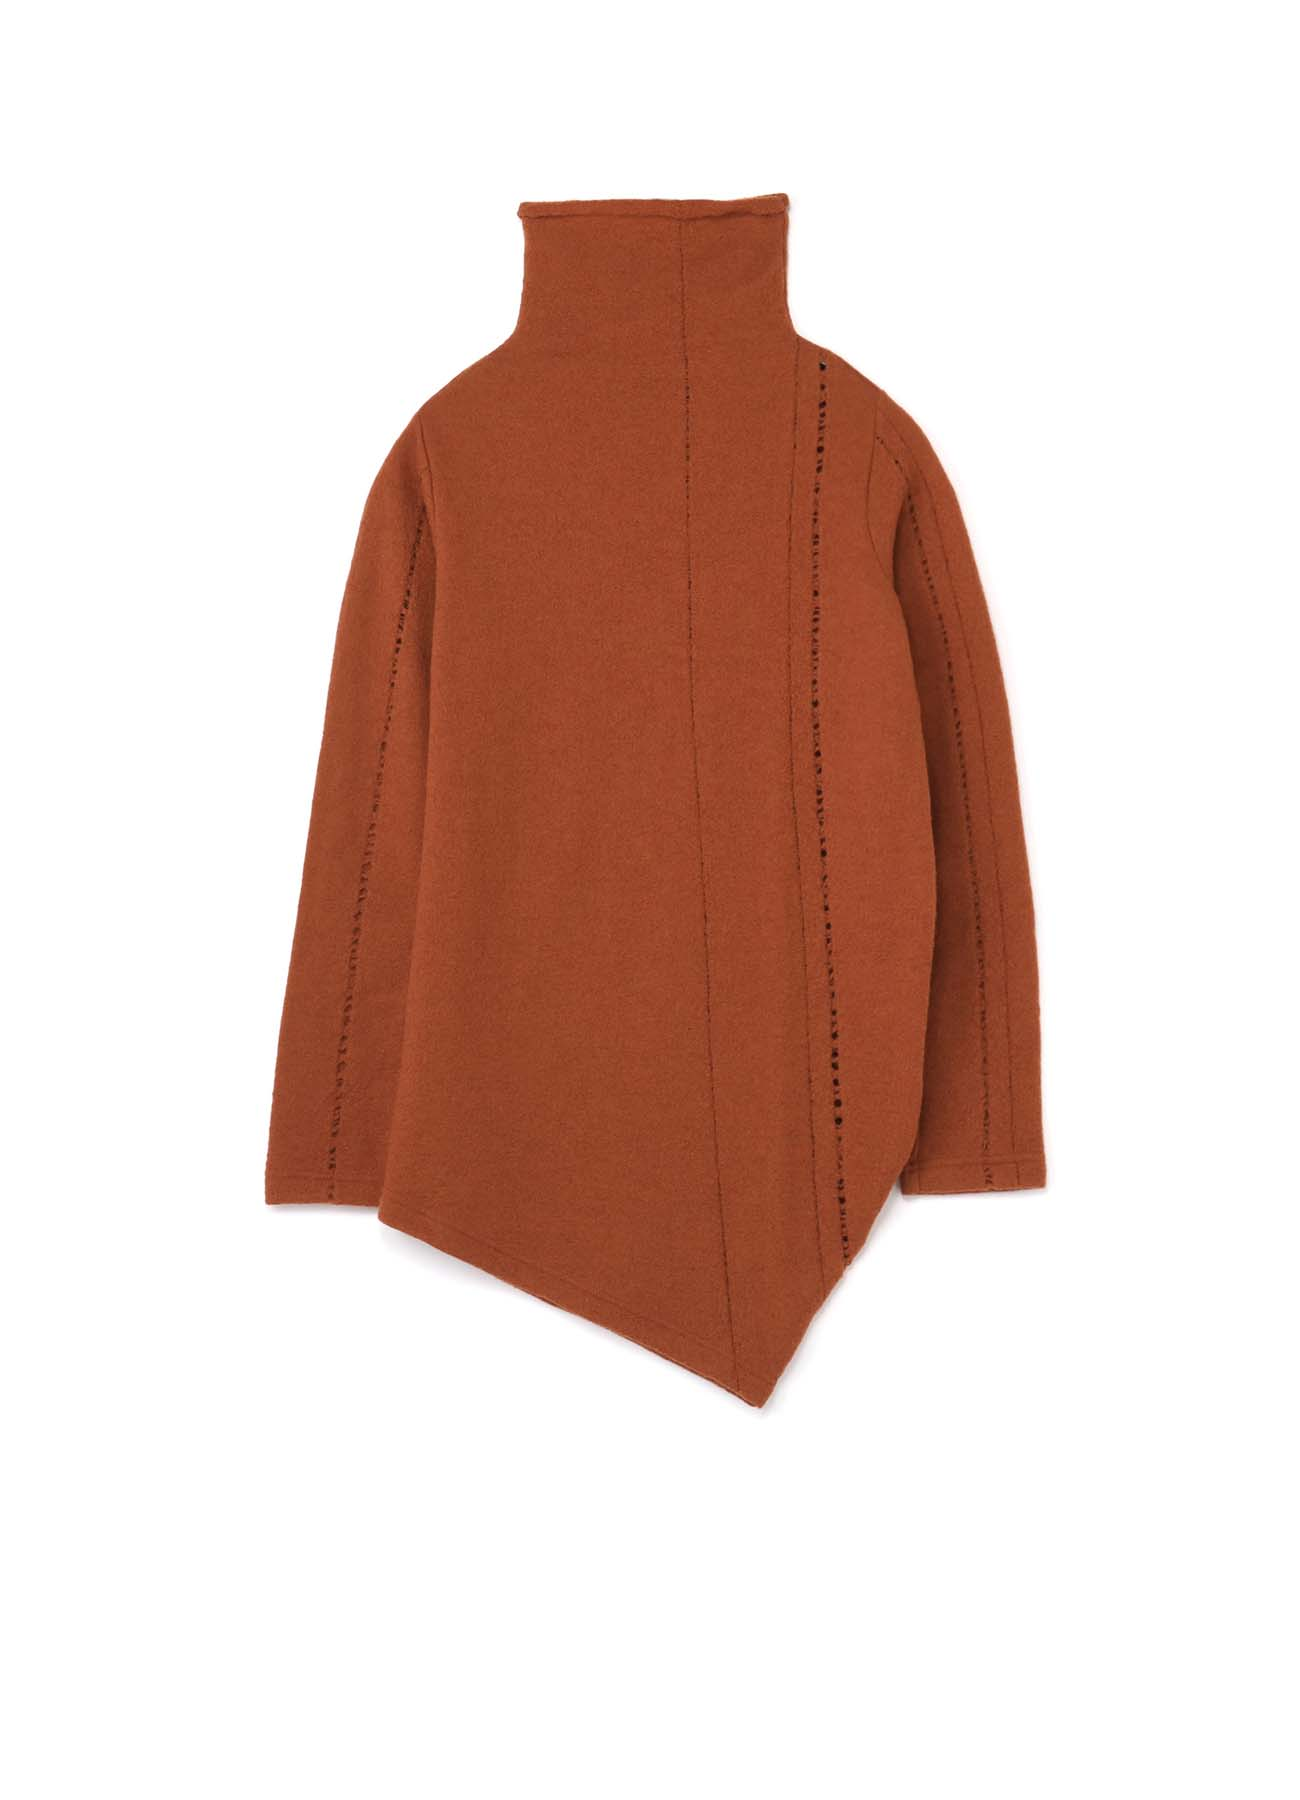 PARTIAL DROP STITCH SHRINKAGE RIGHT SIDE DRAPE HIGH NECK